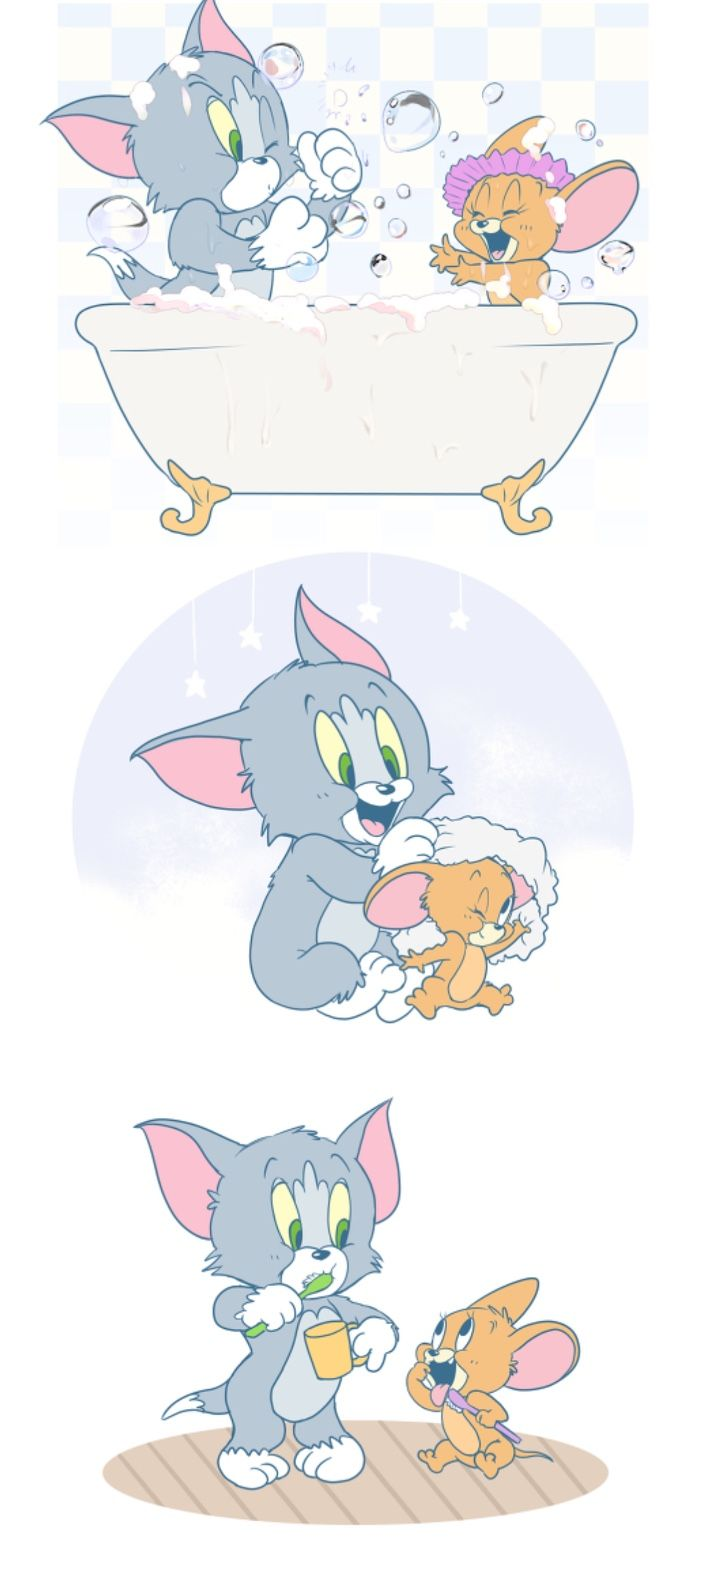 Pin By マッ On Tom And Jerry Tom And Jerry Wallpapers Tom And Jerry Cartoon Tom And Jerry Drawing